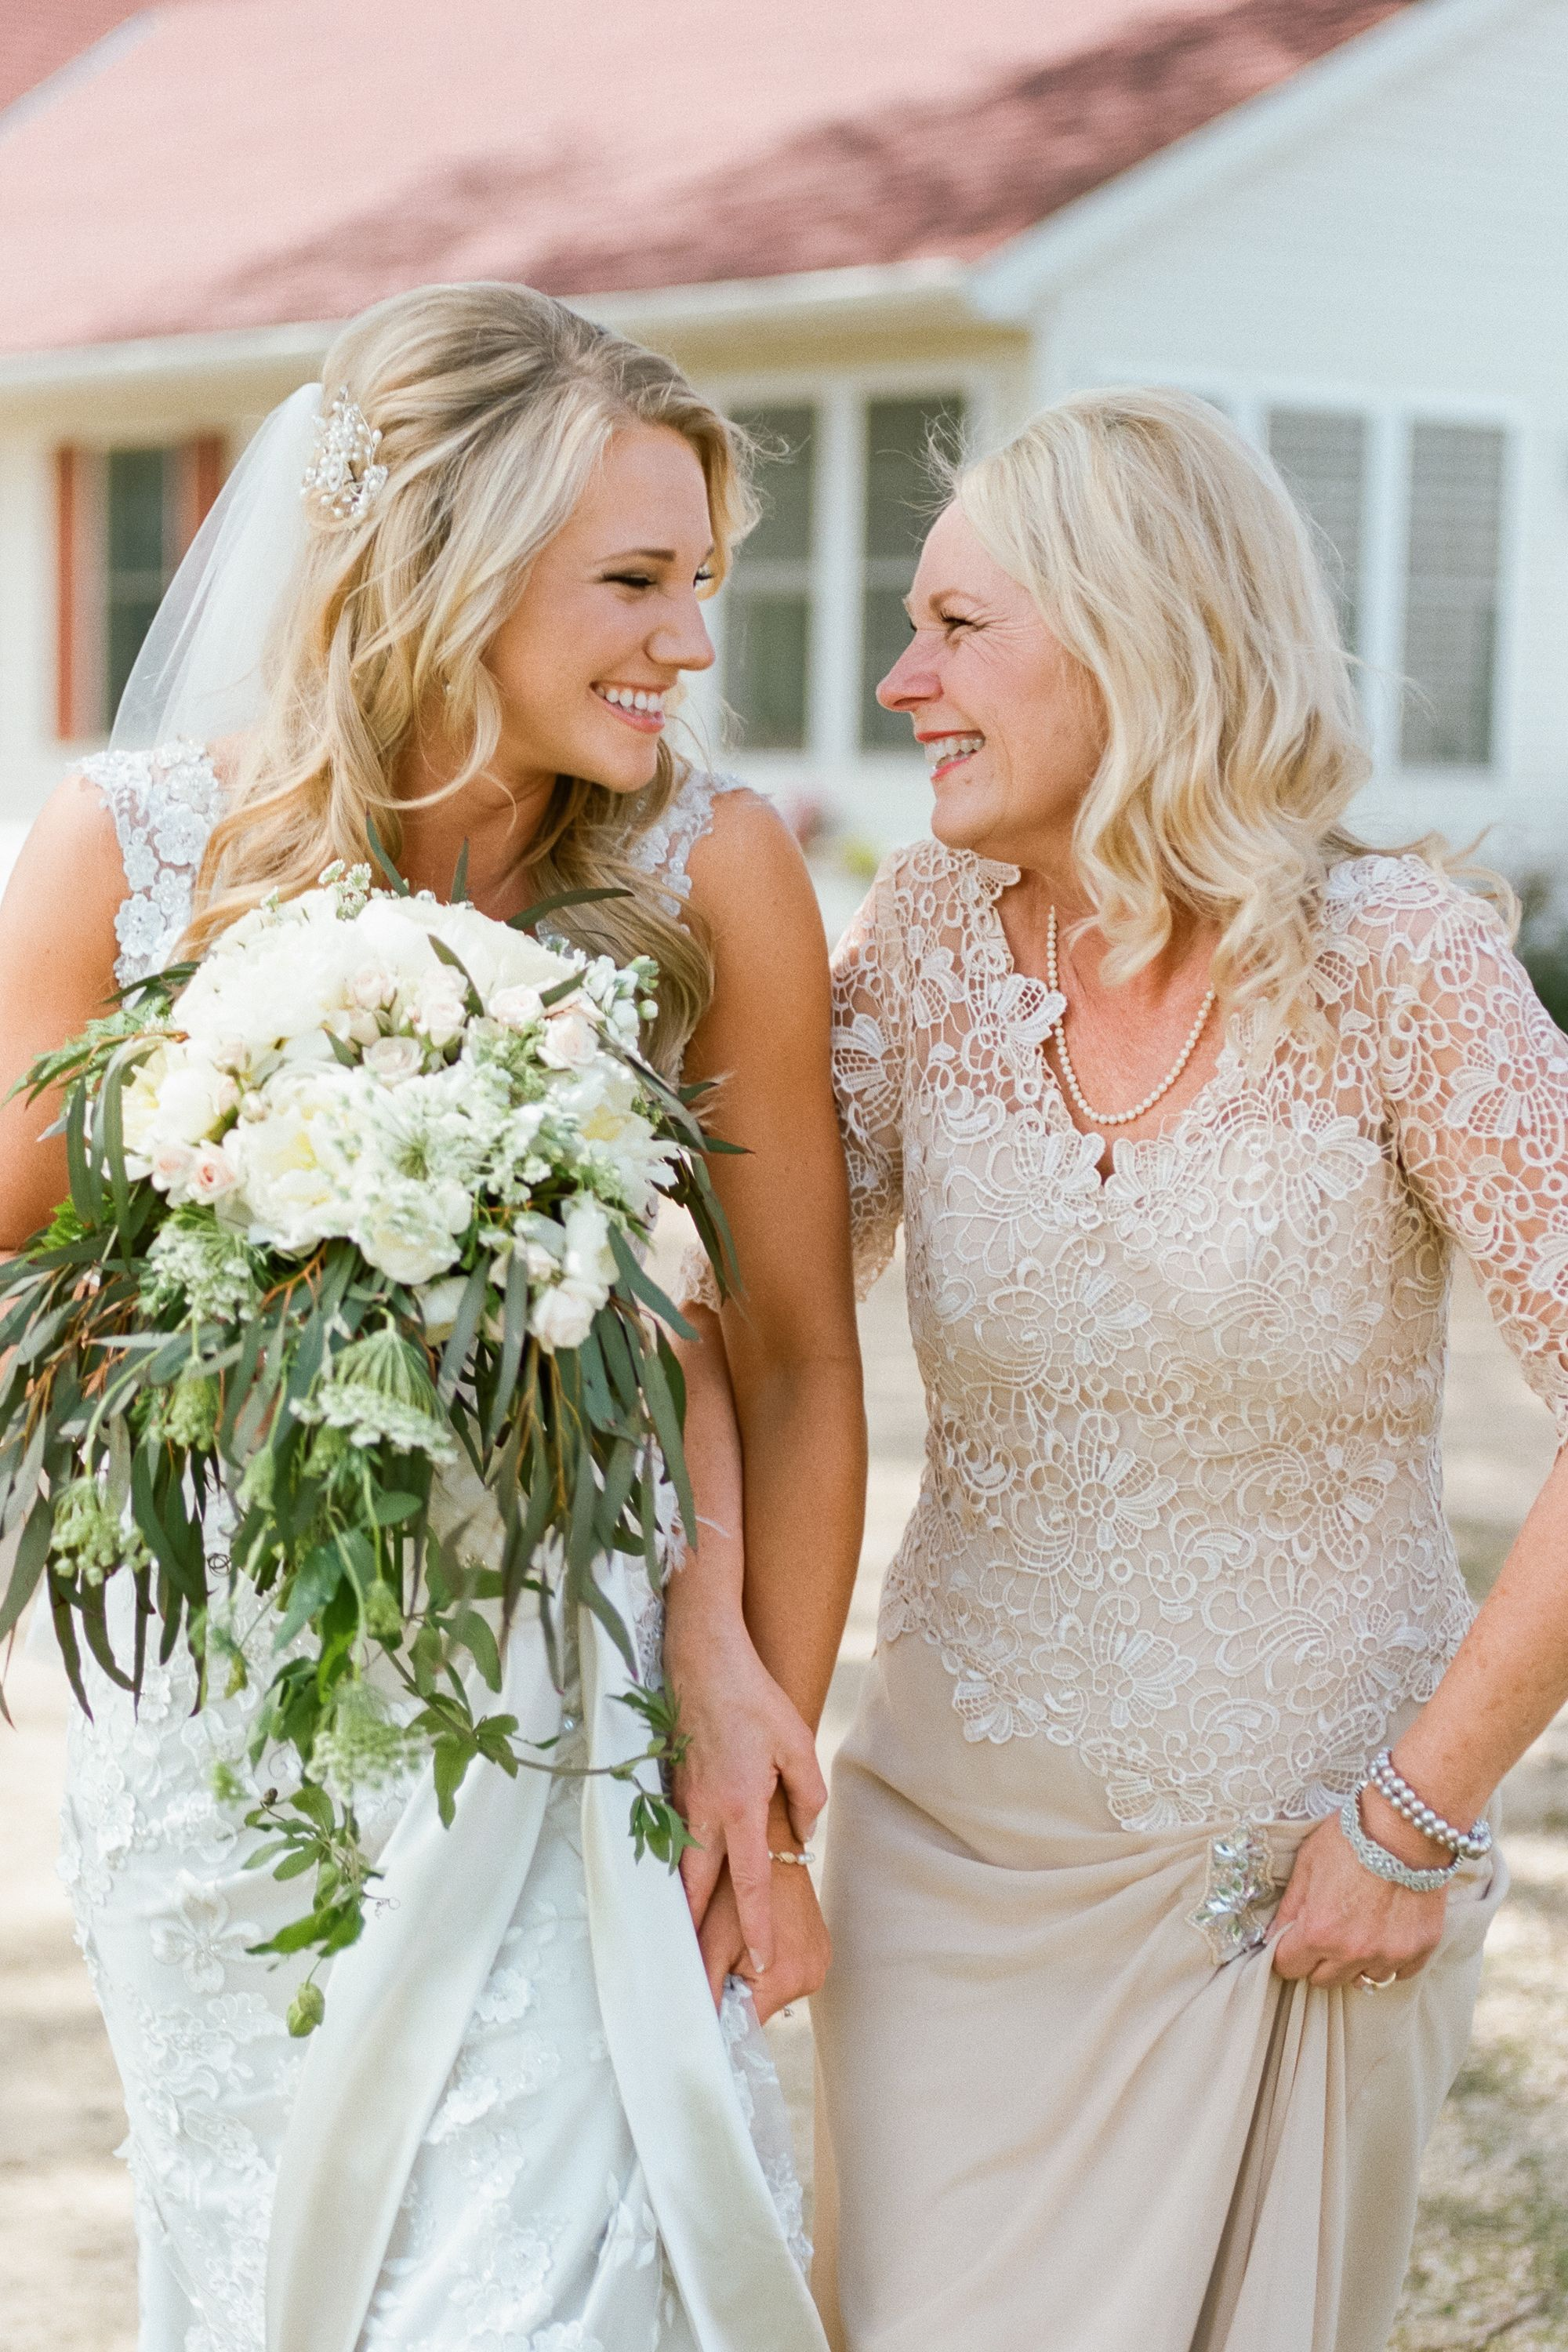 11 Official Mother Of The Bride Duties In Detail Mother Daughter Wedding Bride Wedding Ceremony Photos